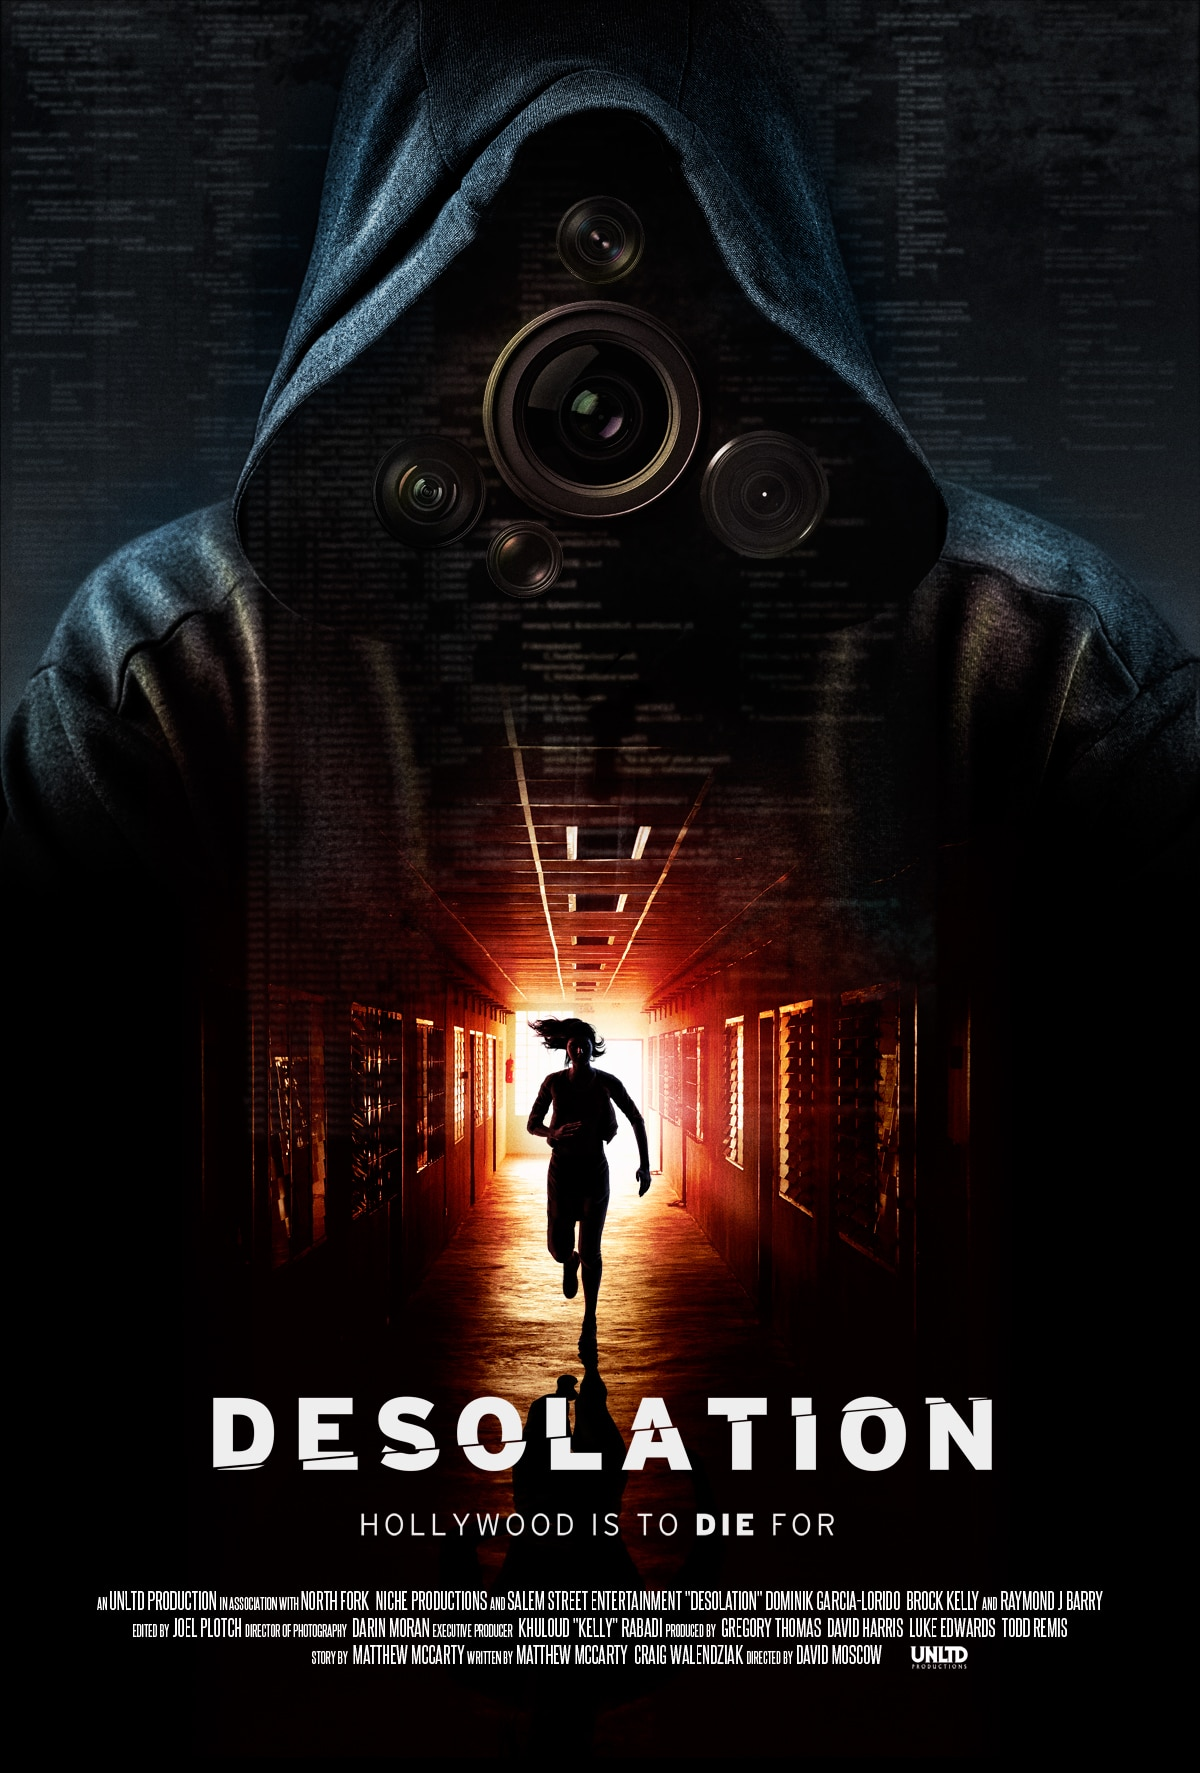 desolation poster - Exclusive Images Take Us to Desolation